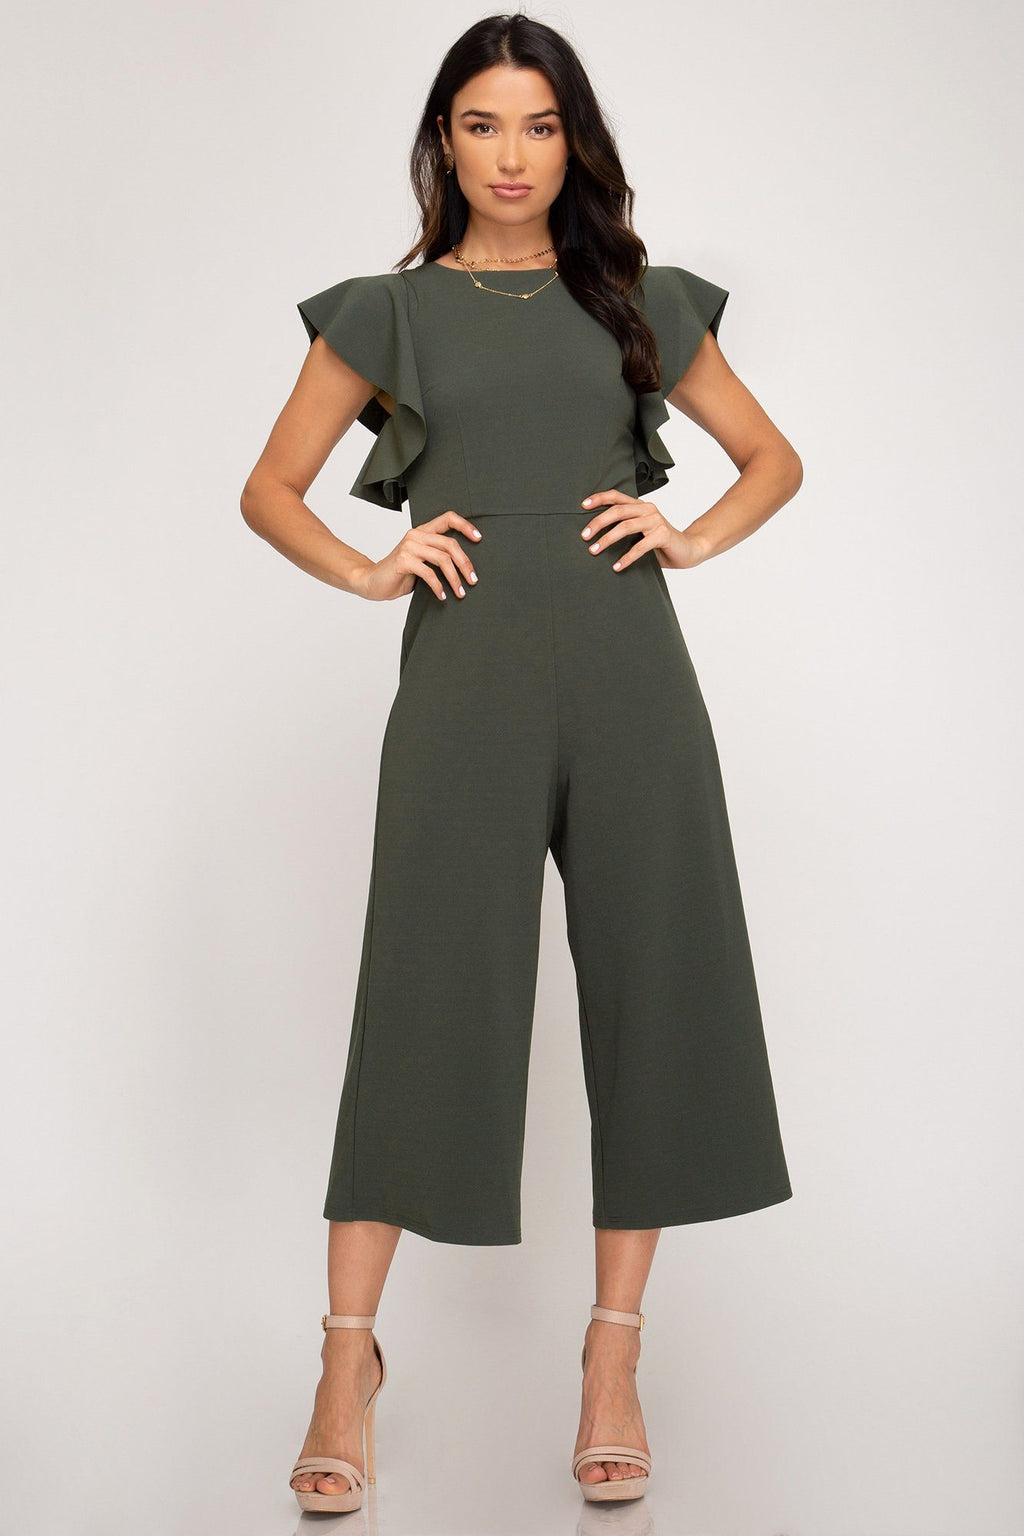 Say You Will Olive Jumpsuit - Caroline Hill